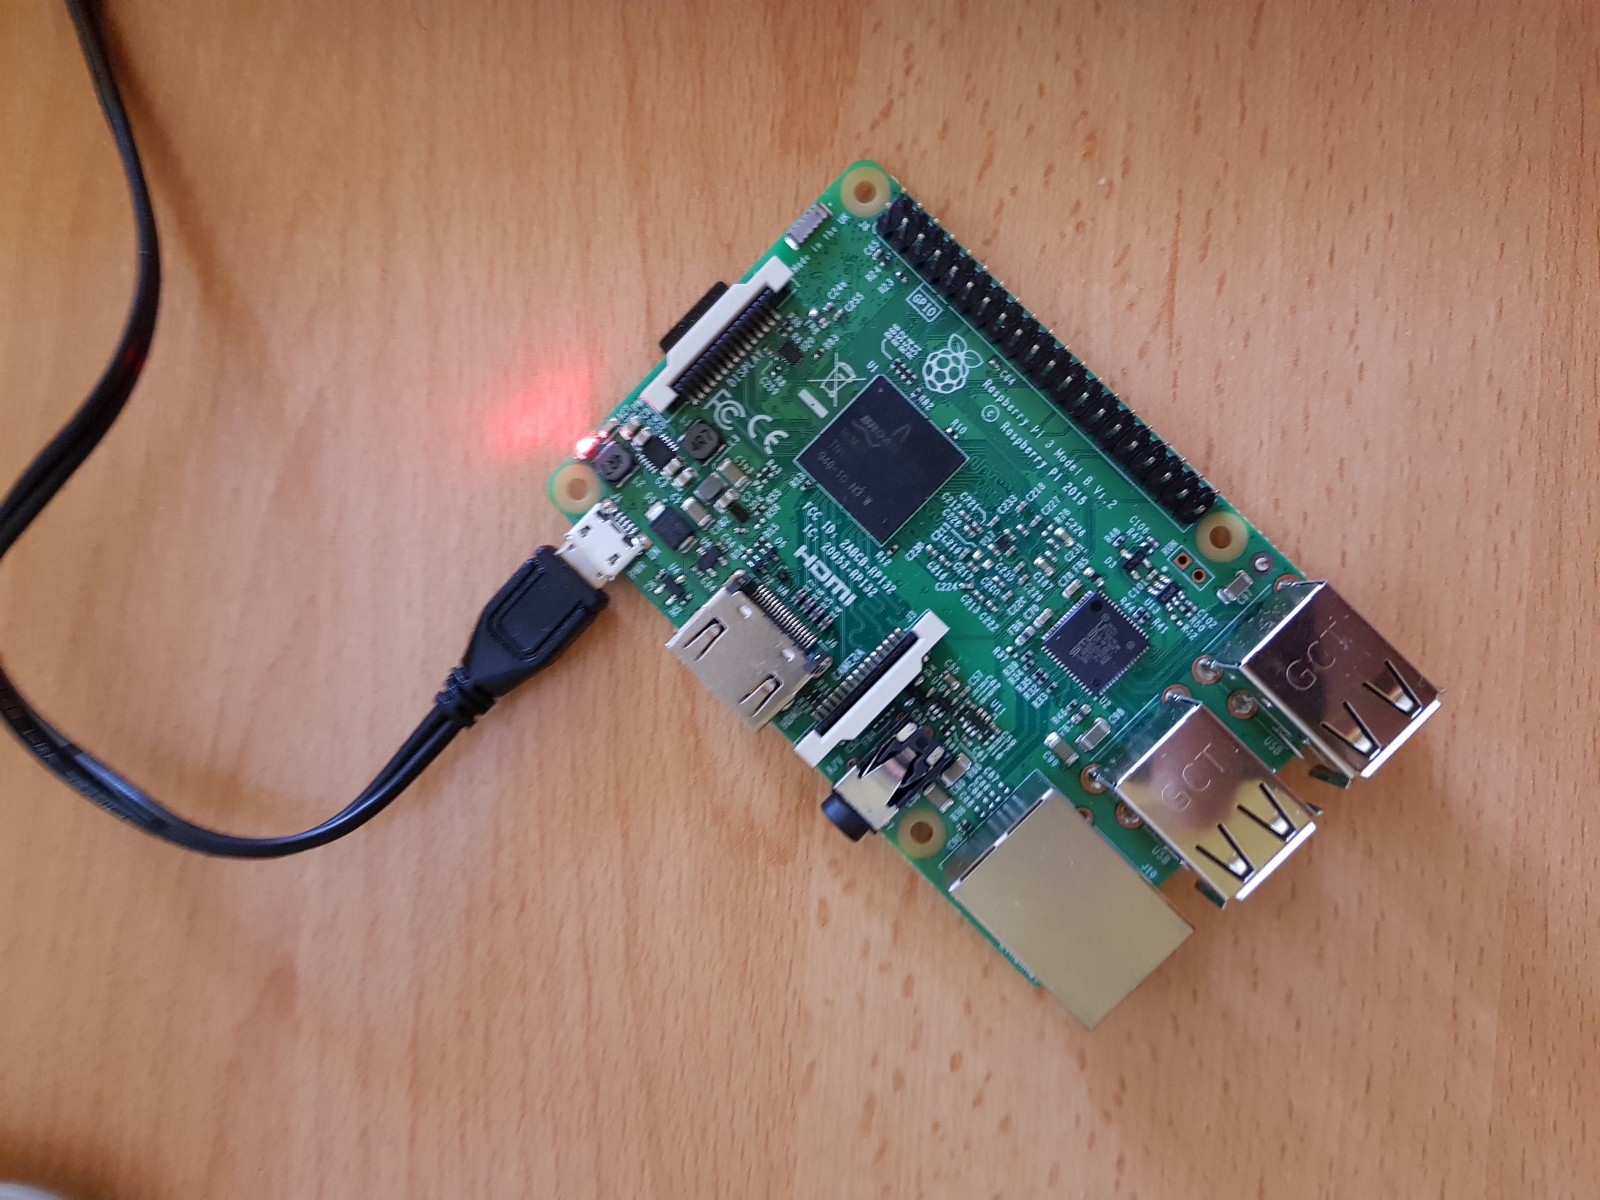 How To Run Your Own Openvpn Server On A Raspberry Pi Integrated Circuit Technologies Just Another Wordpress Weblog My Serving As An